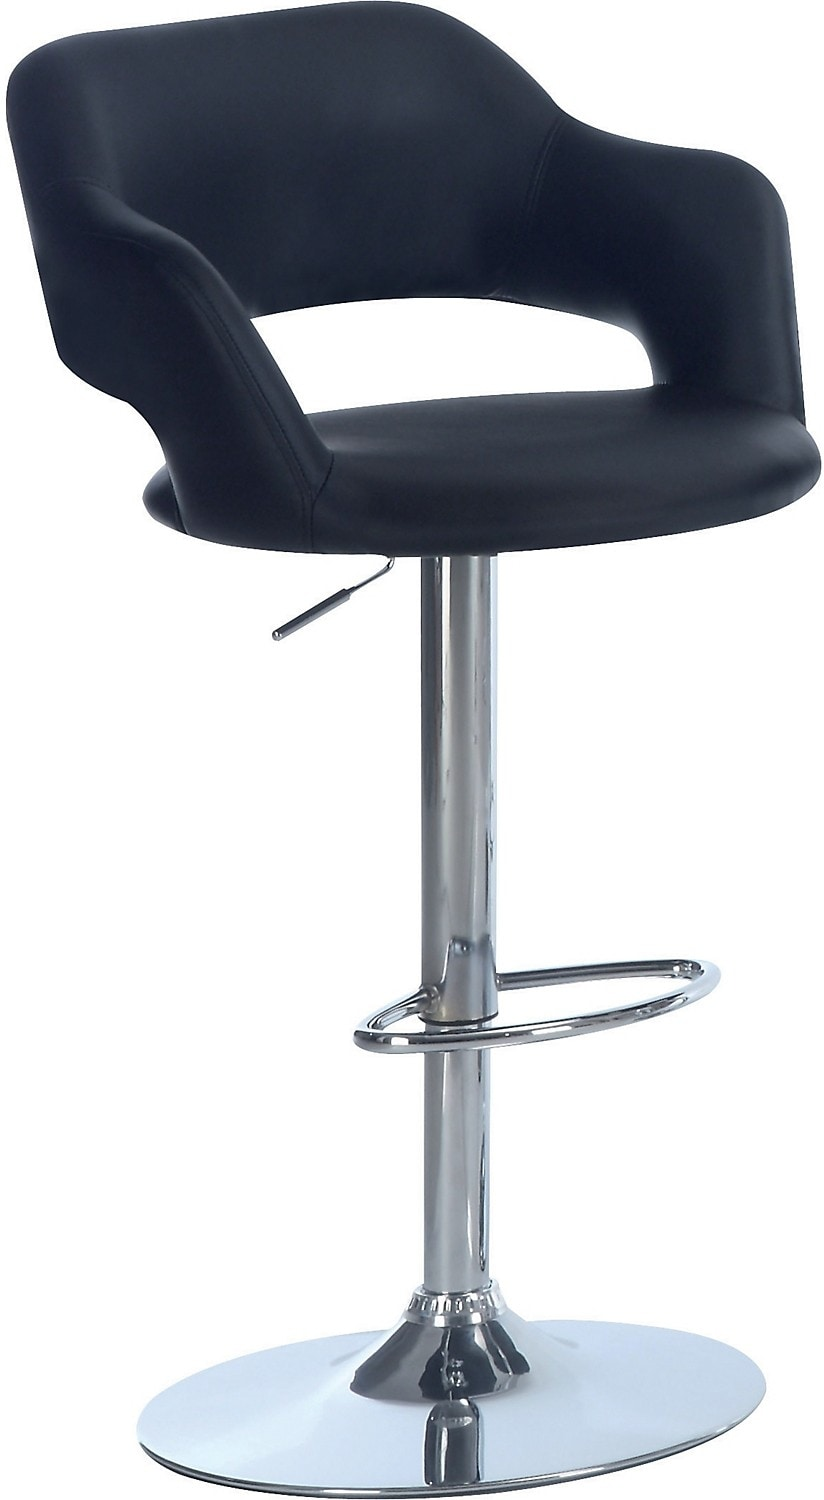 Bar Chairs Black Hydraulic Stool Commercial